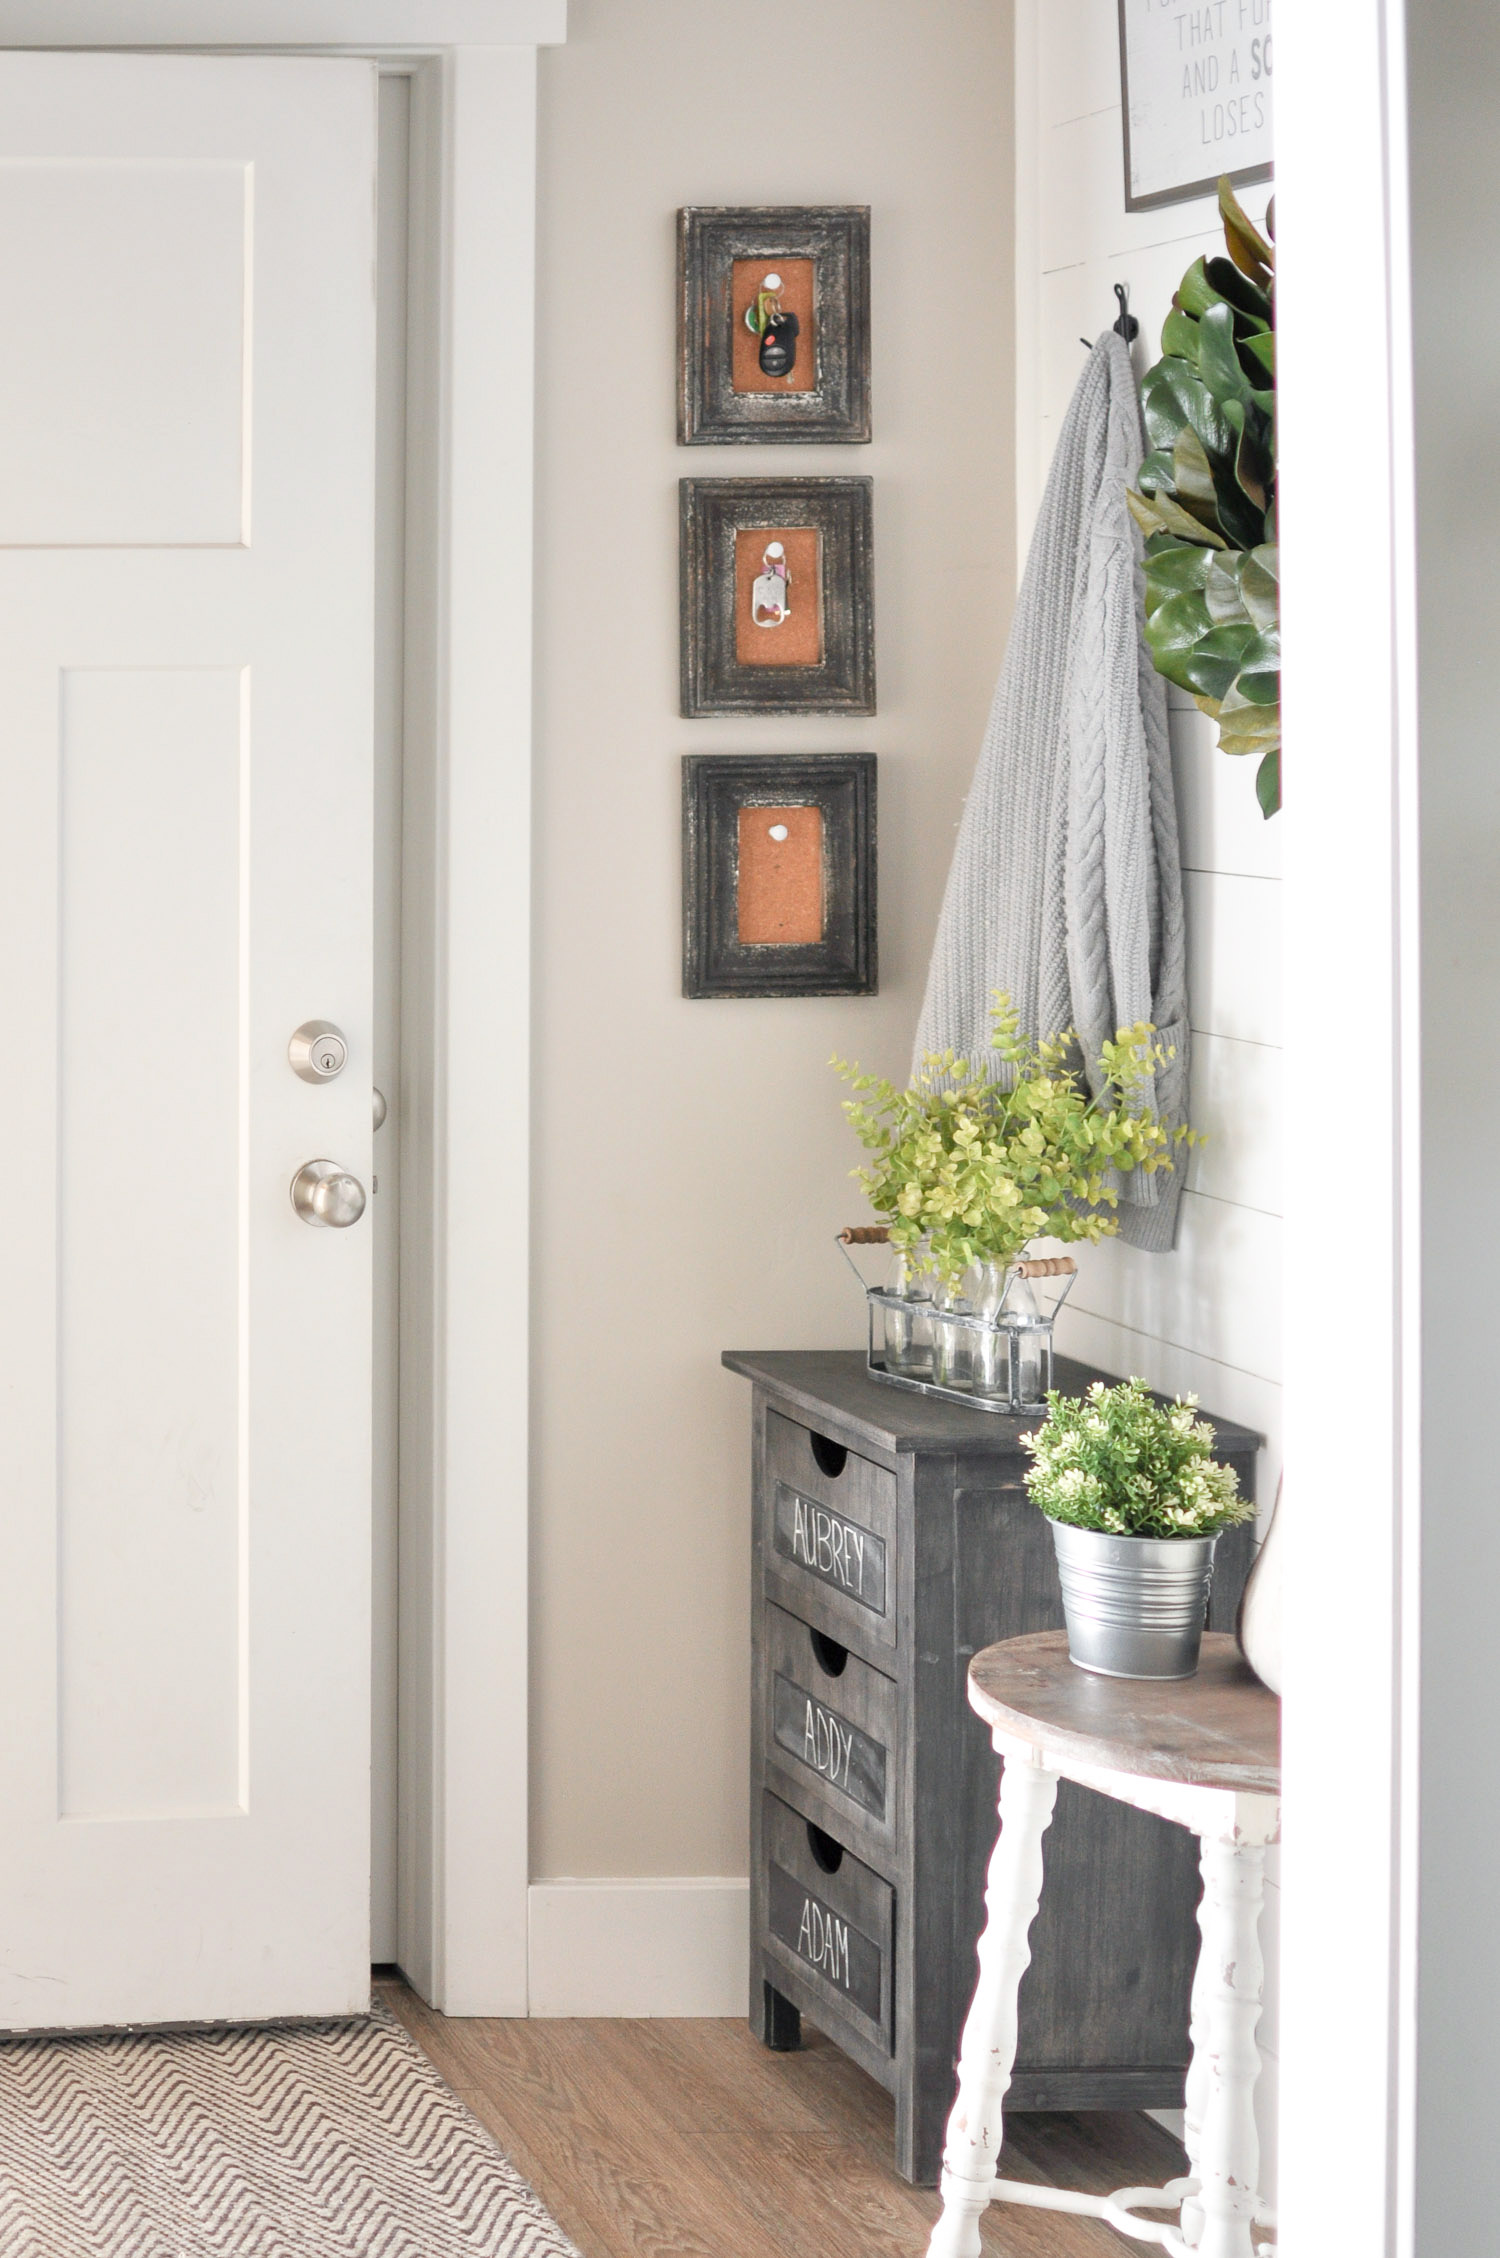 25 real life mudroom and entryway decorating ideas by for Foyer decorating ideas small space